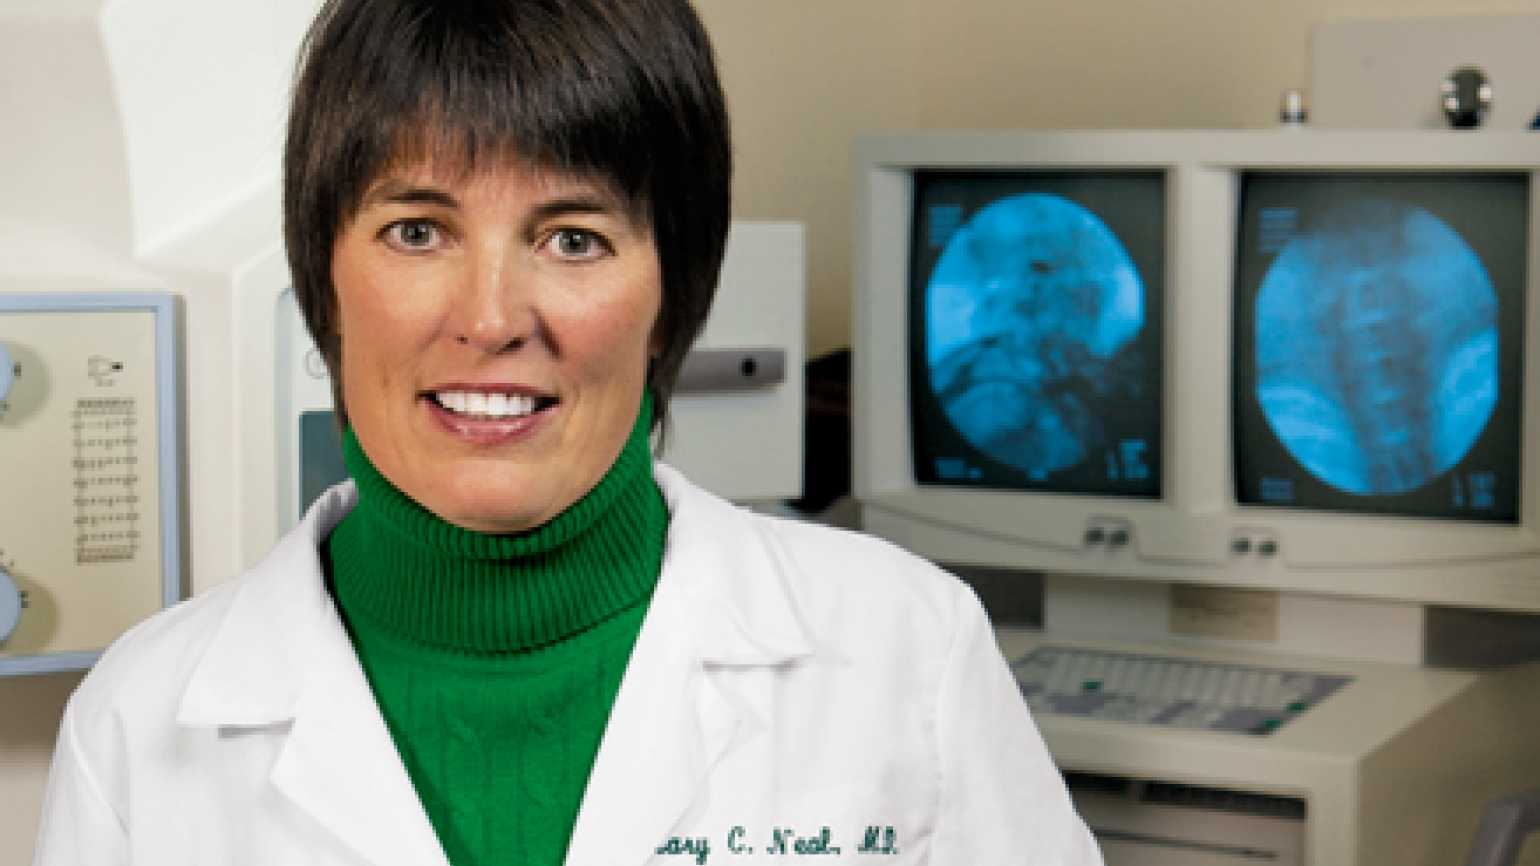 Dr. Mary C. Neal